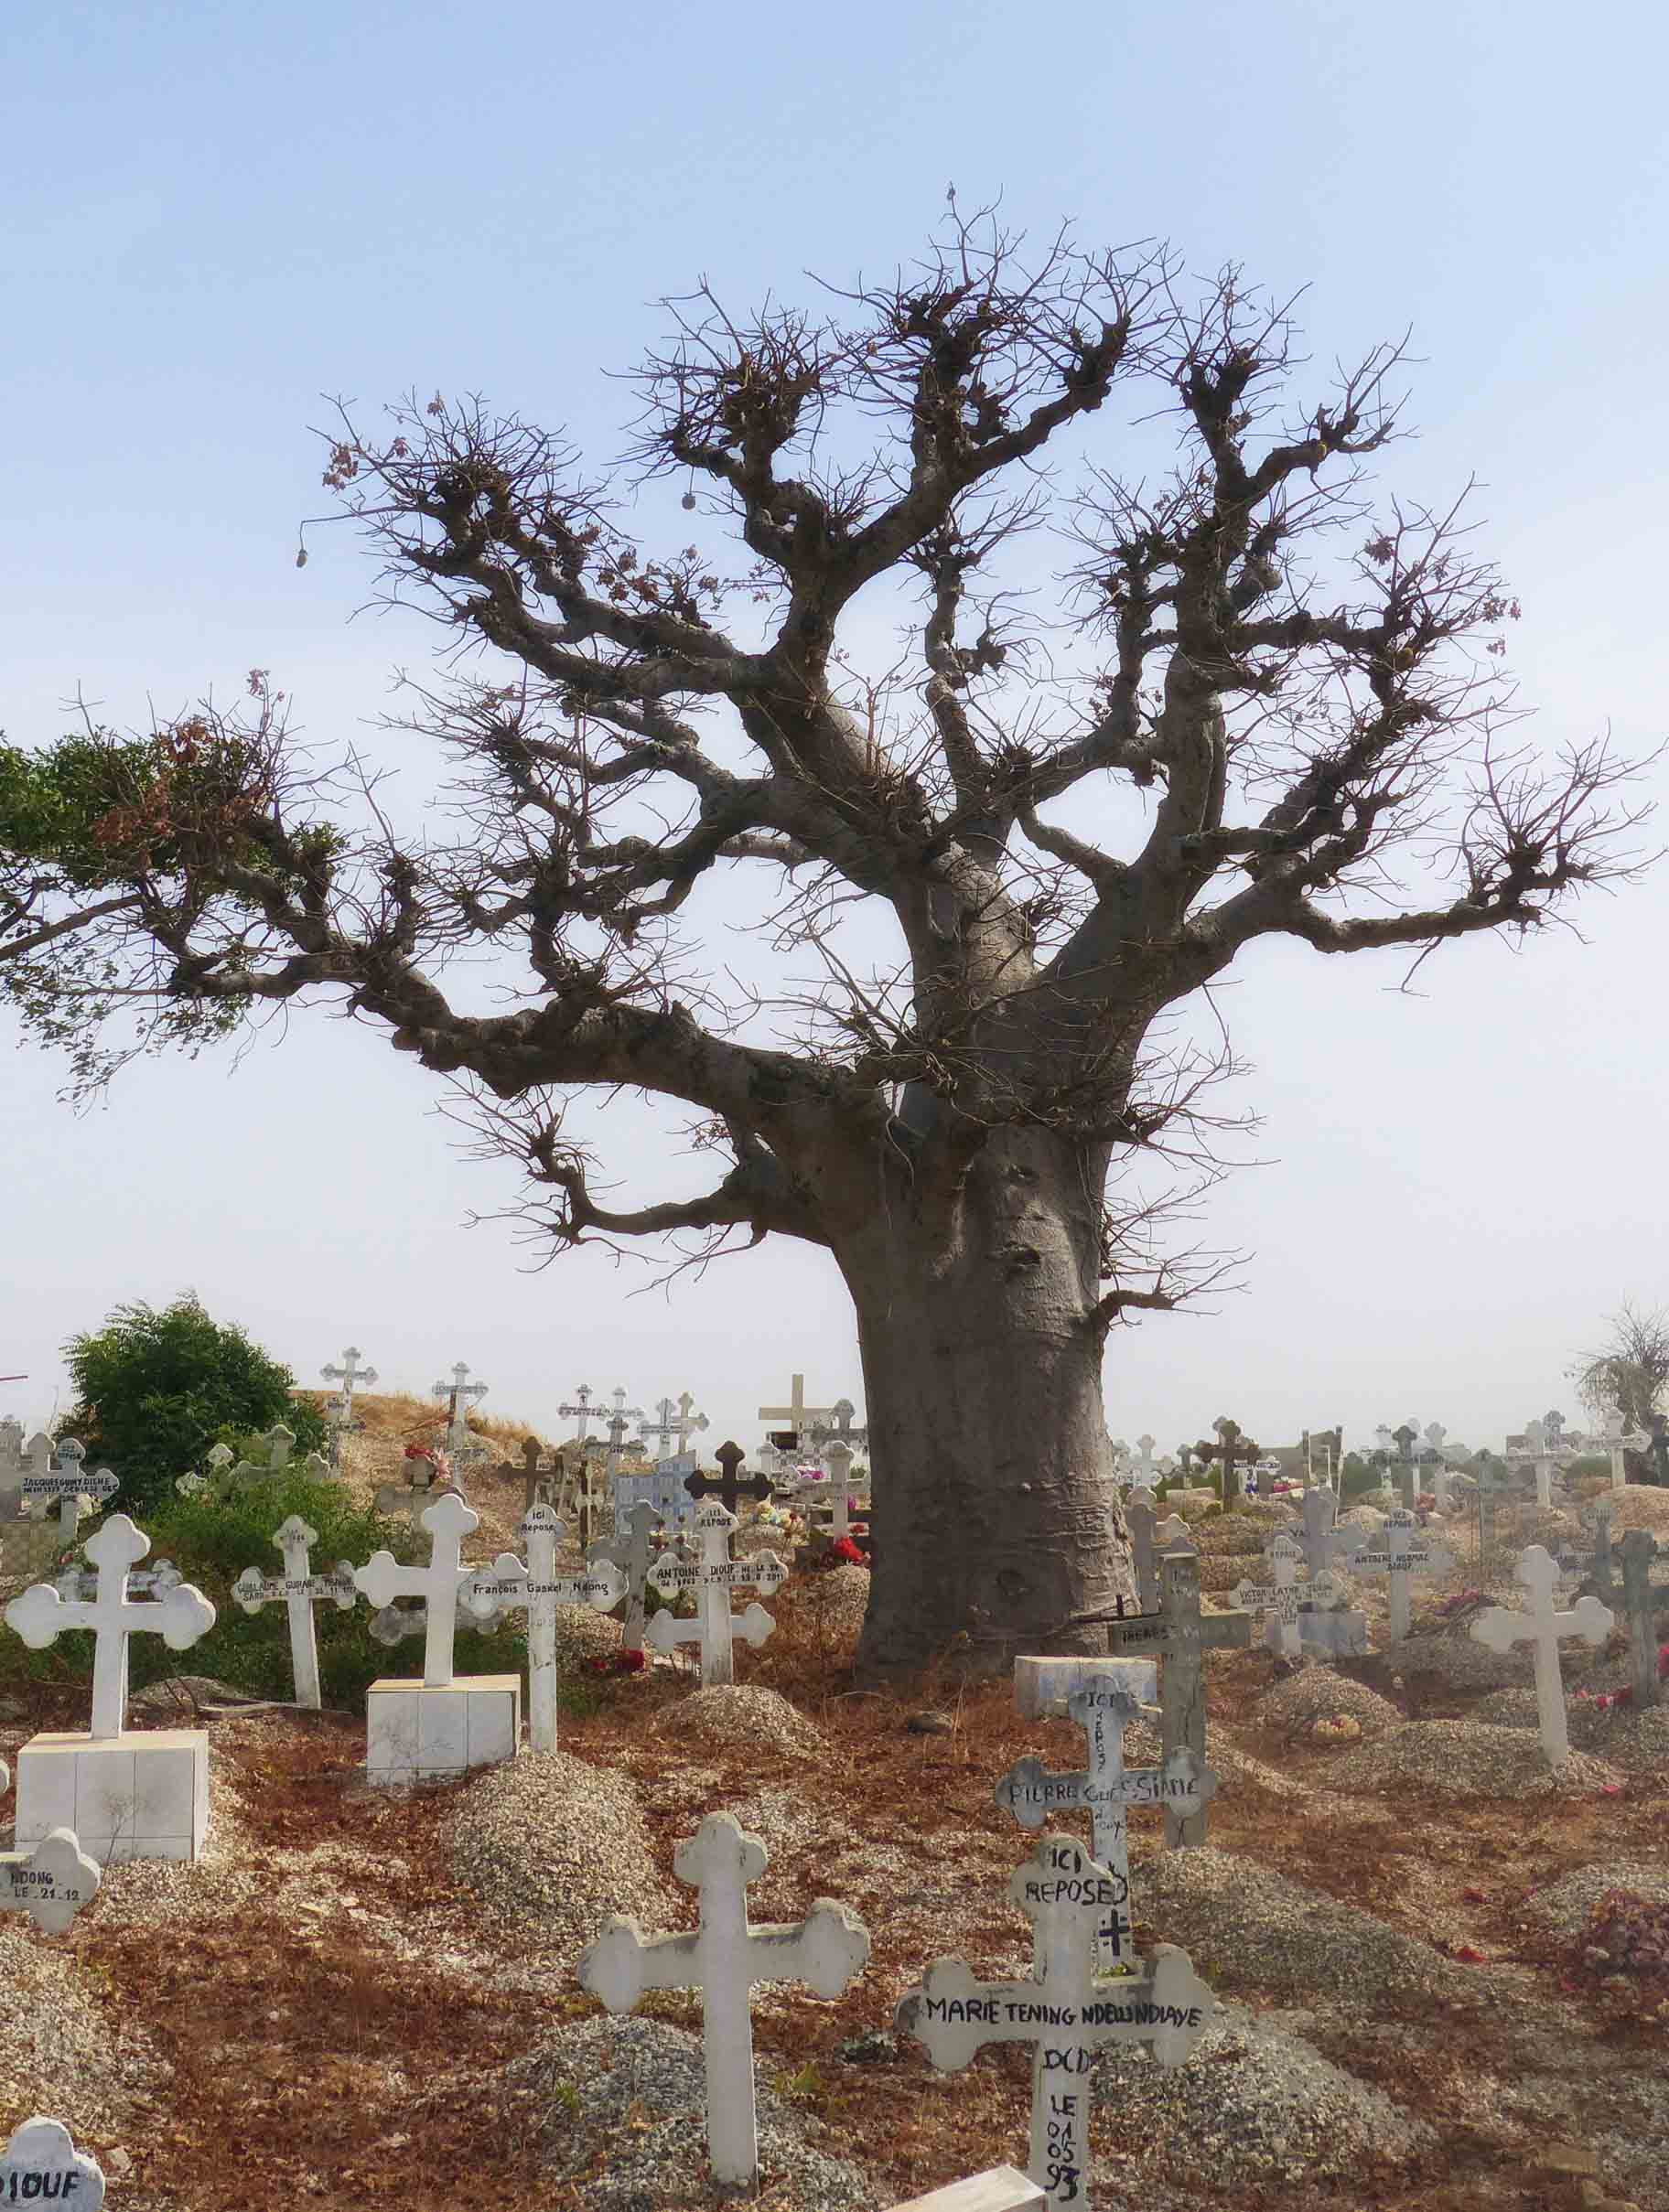 Large banyan tree and white crosses